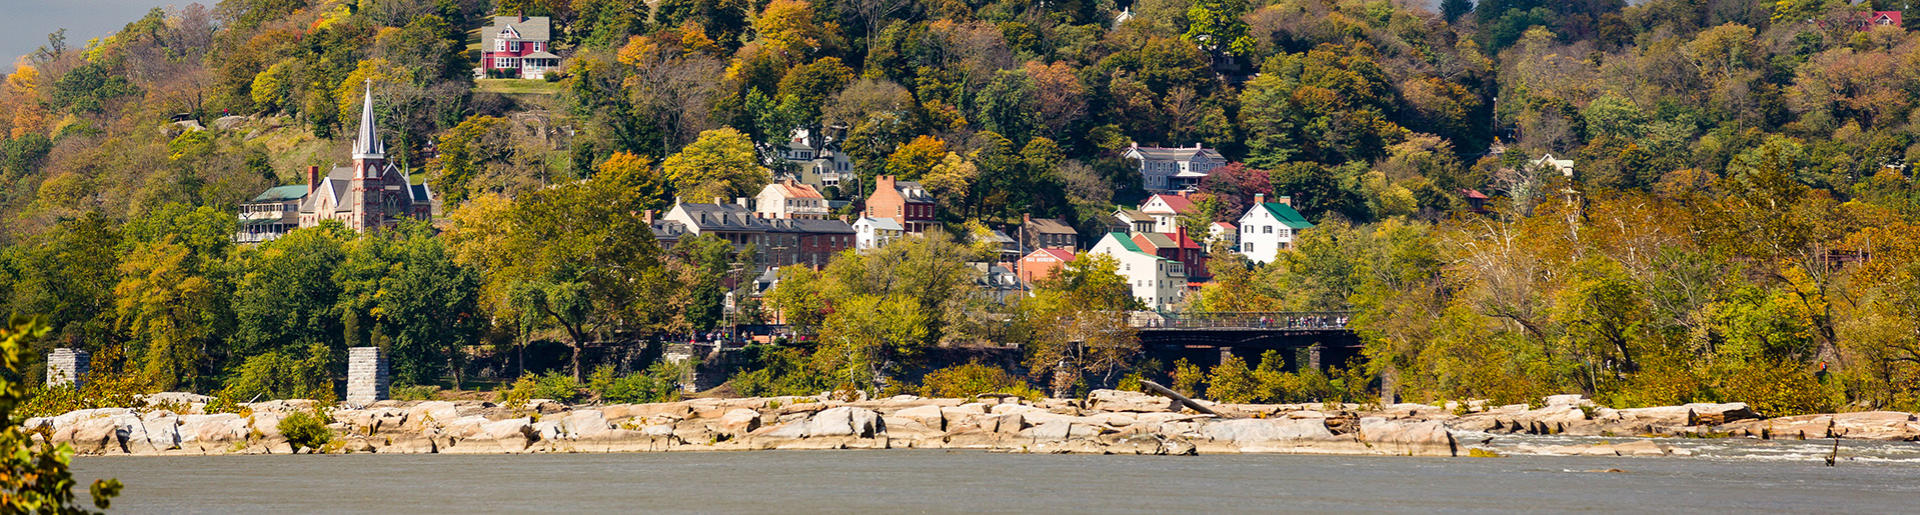 historic Harpers Ferry West Virginia from Potomac and Shenandoah Rivers